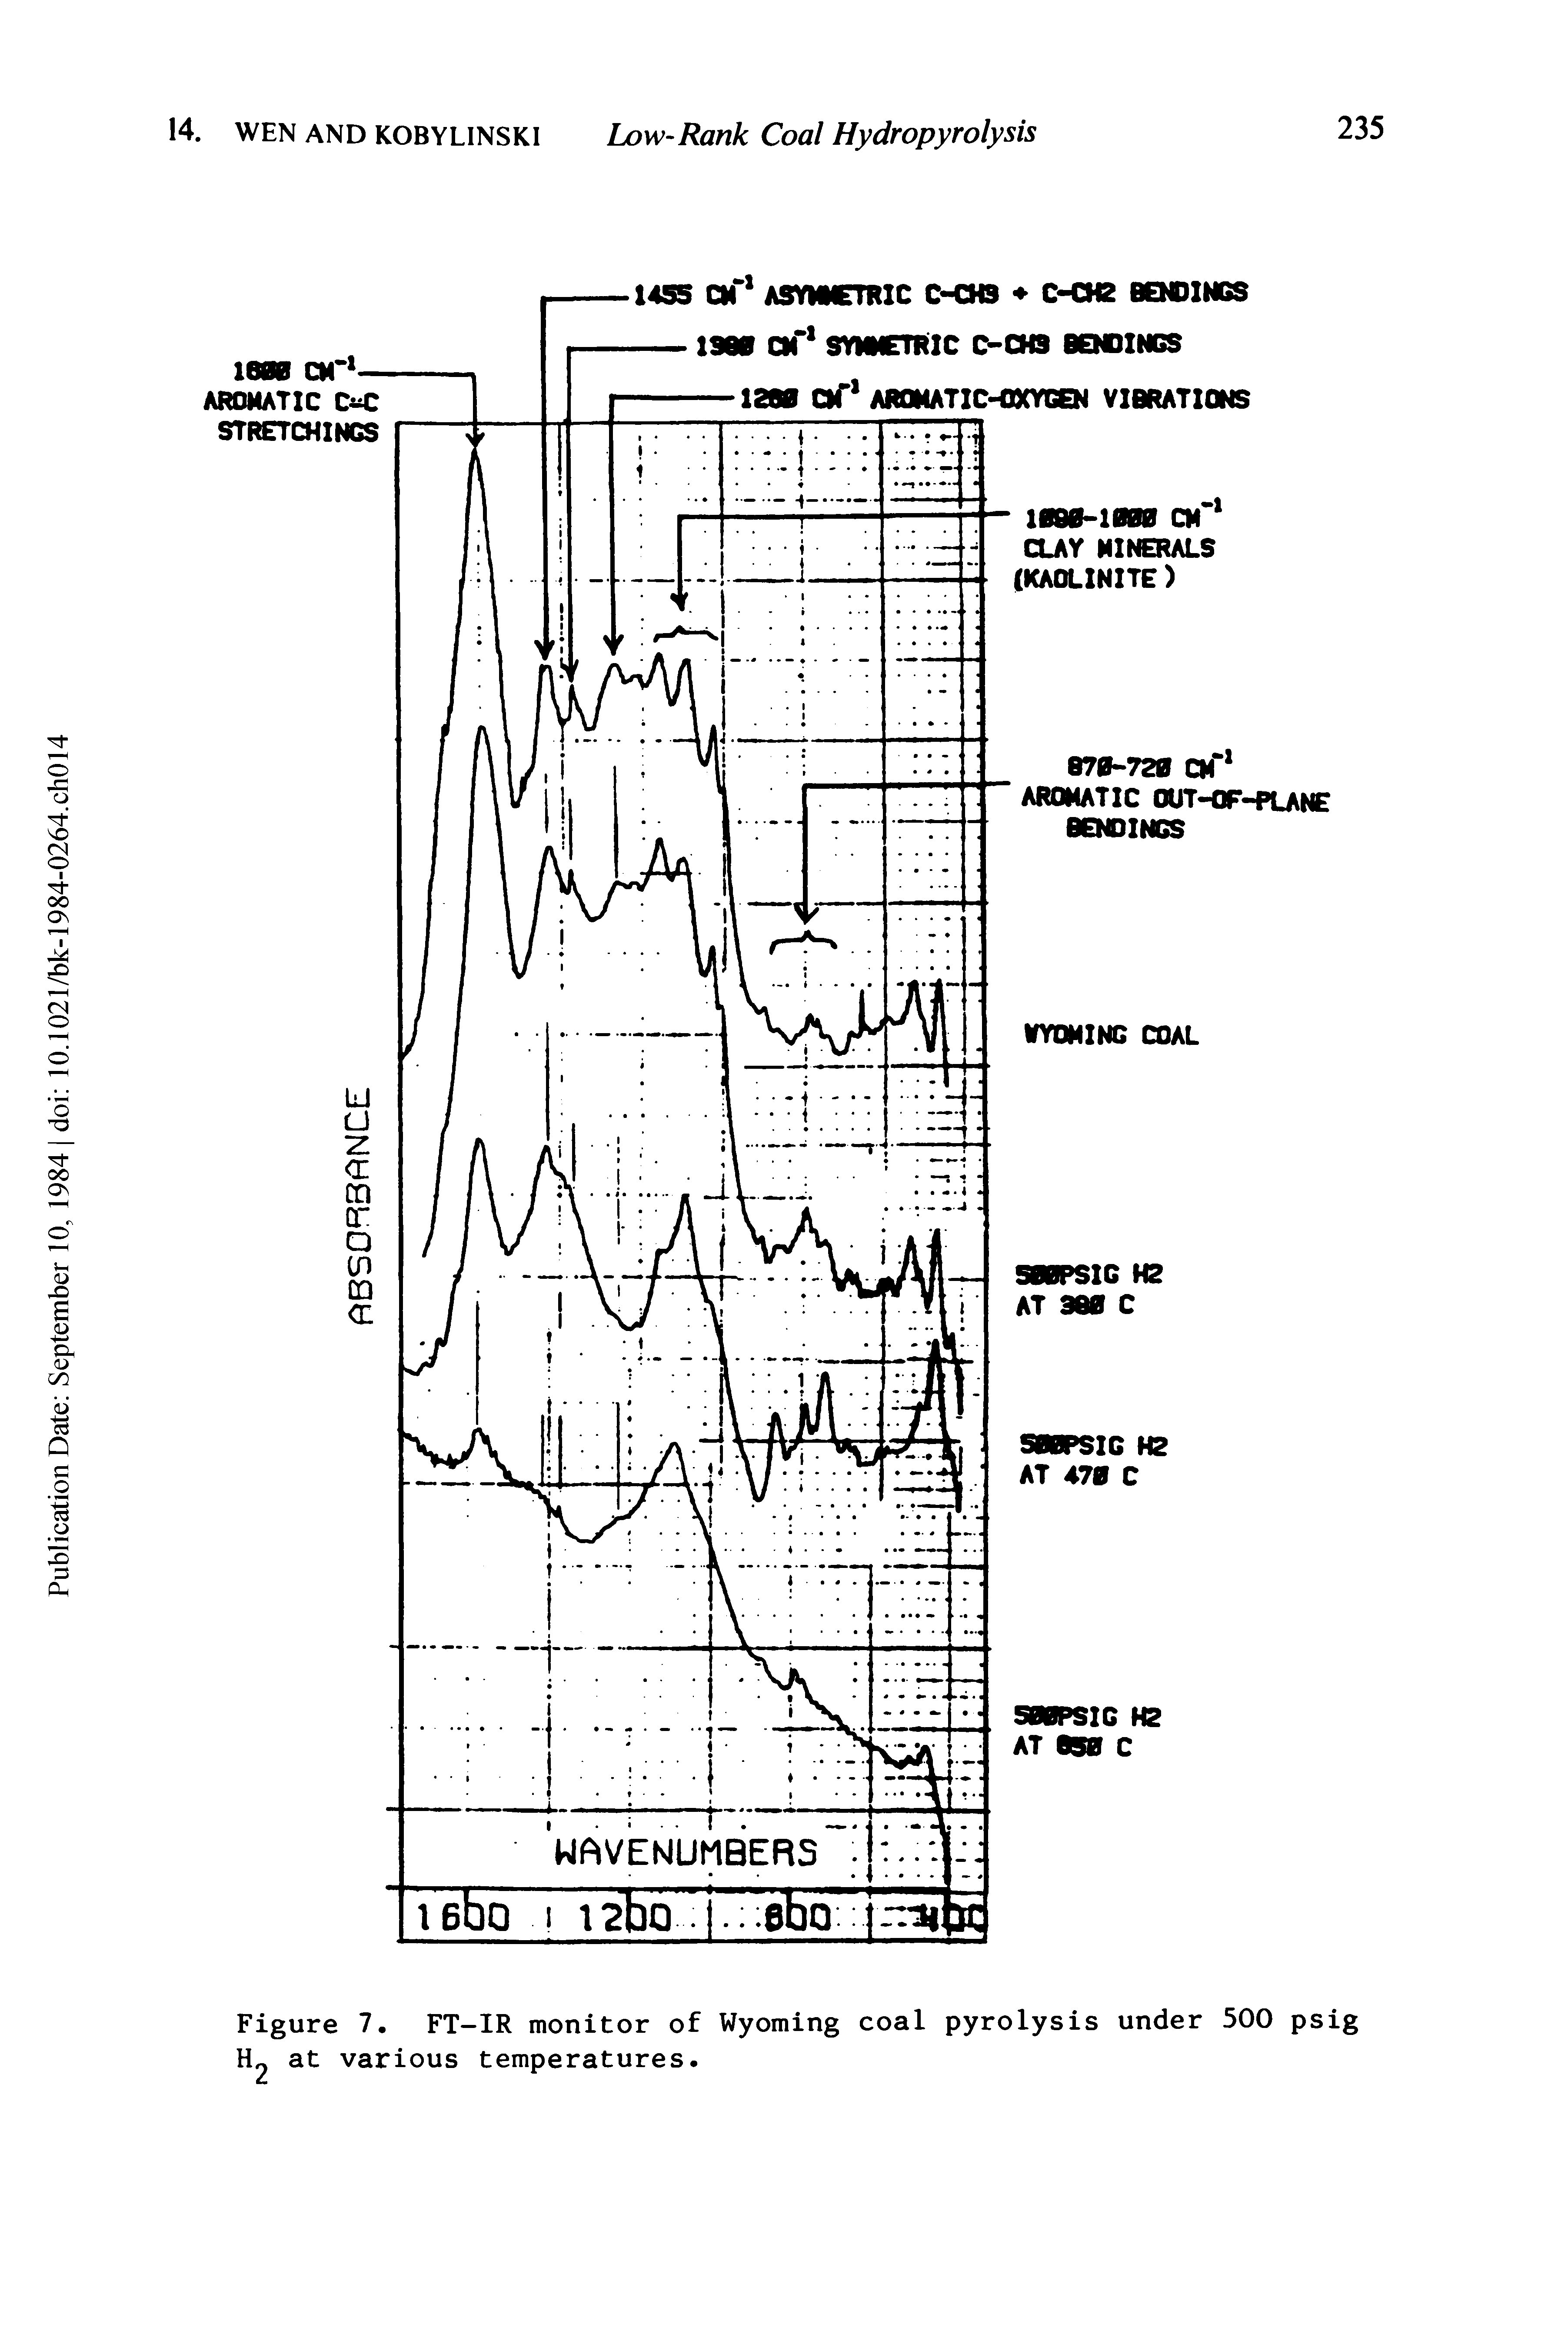 Figure 7. FT-IR monitor of Wyoming coal pyrolysis under 500 psig H2 at various temperatures.